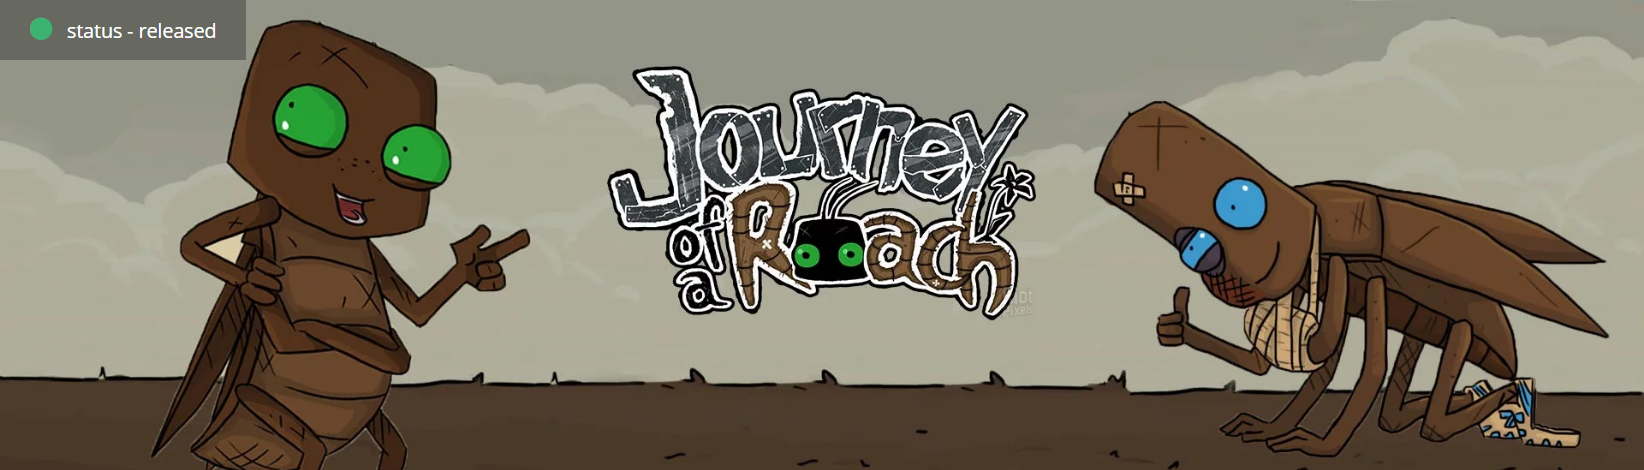 Screenshot_2019-09-13 Journey of a Roach Indiegala Developers.png